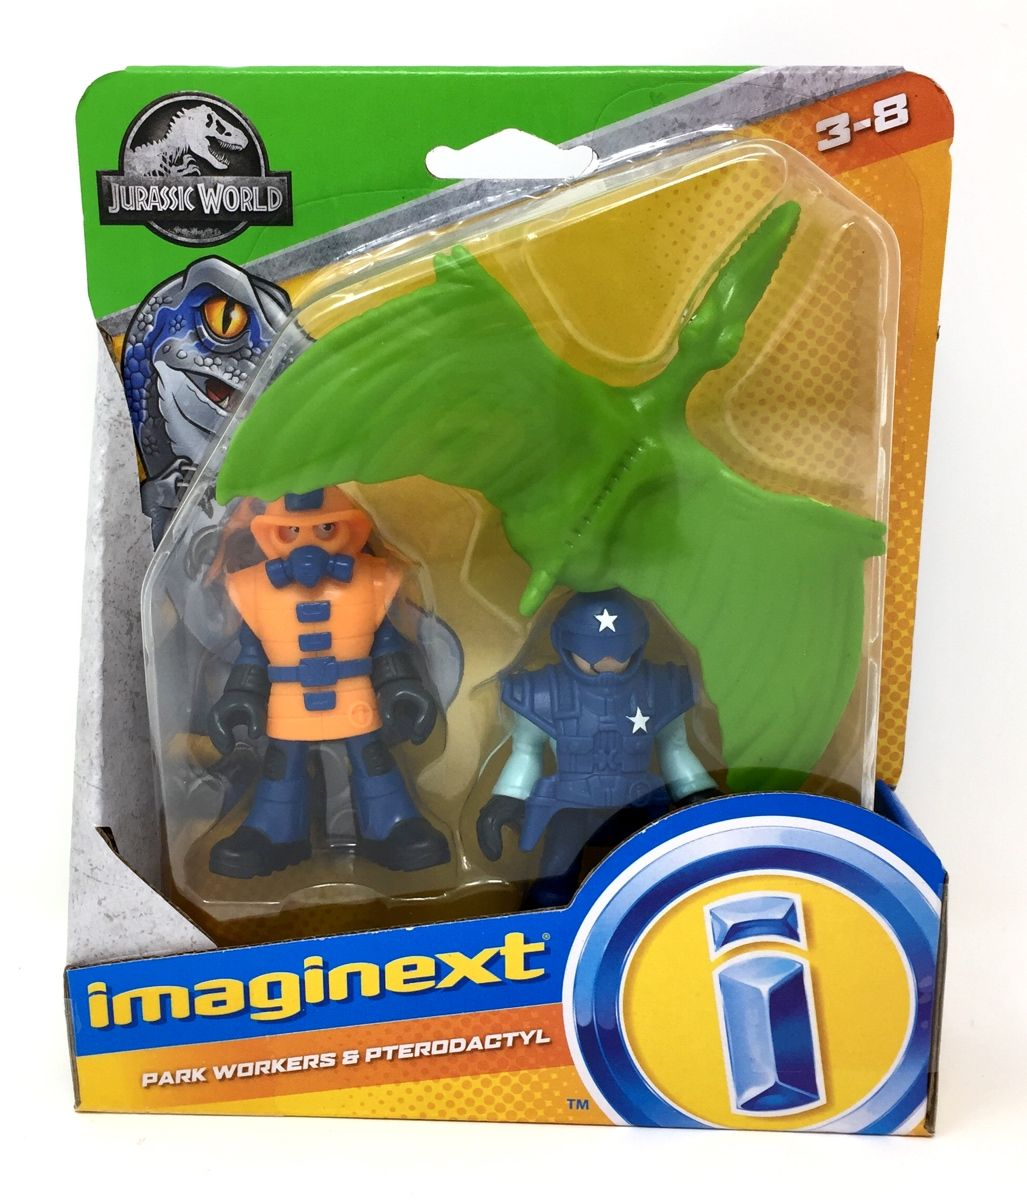 Imaginext Jurassic Park Workers and Pterodectyl #jurassicparkworld